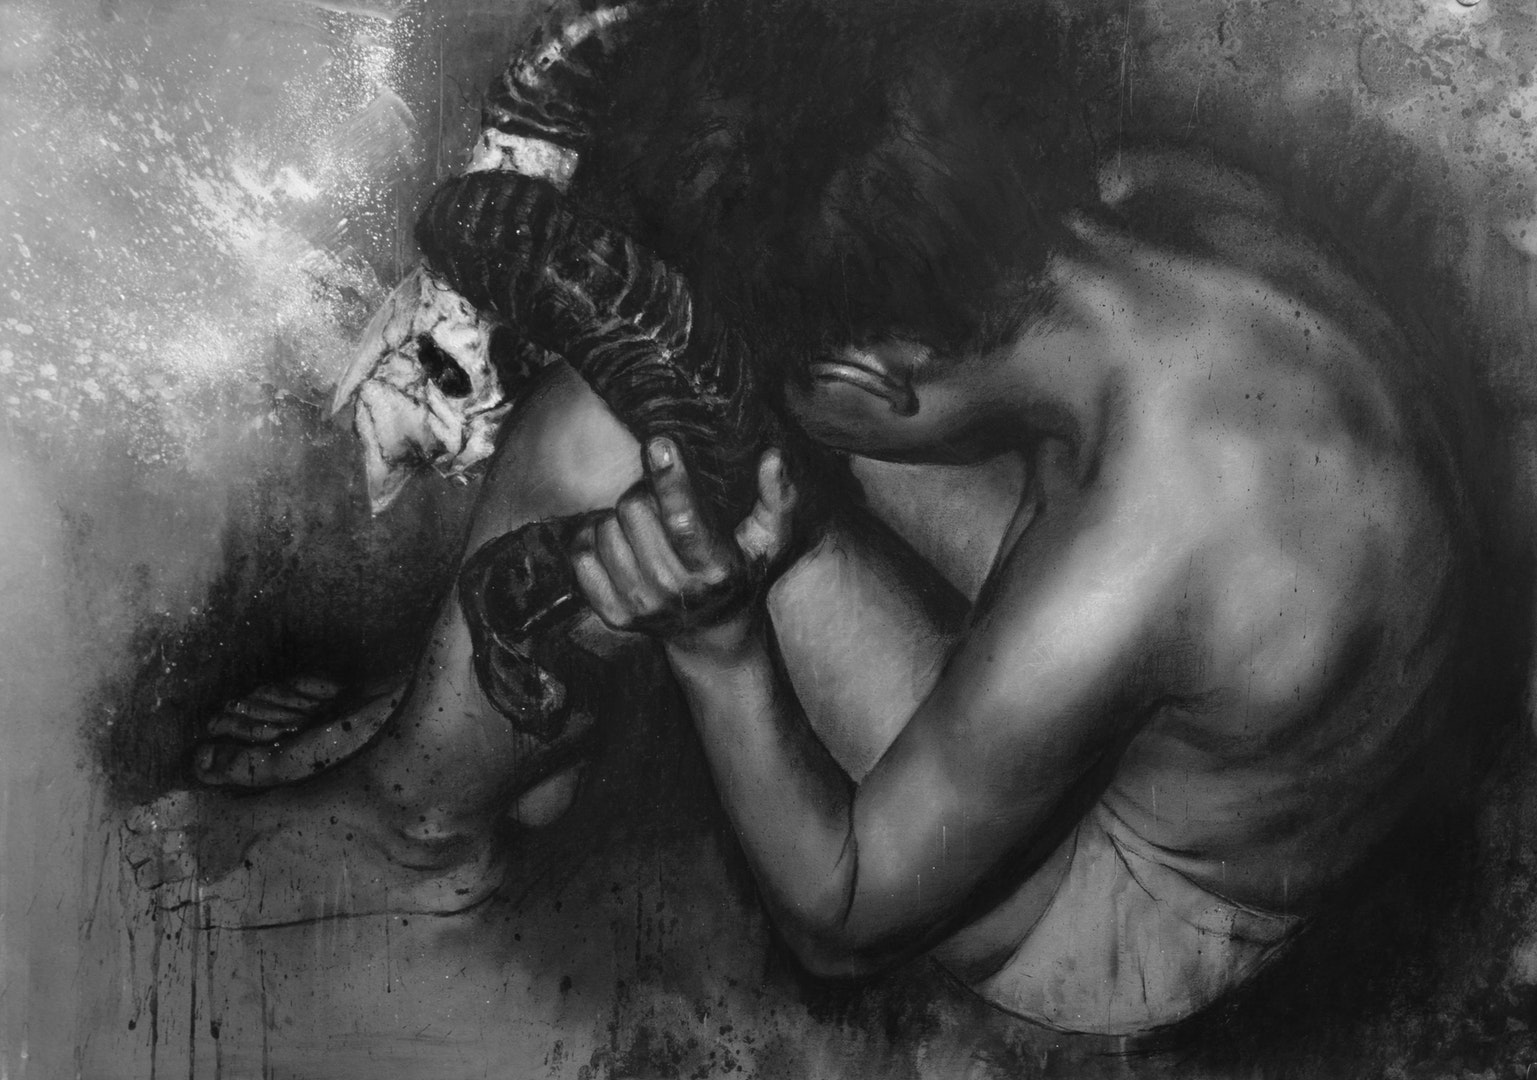 'Isaac envied the ram', Daniel Cooke, Charcoal and chalk on paper, 59 x 84 cm